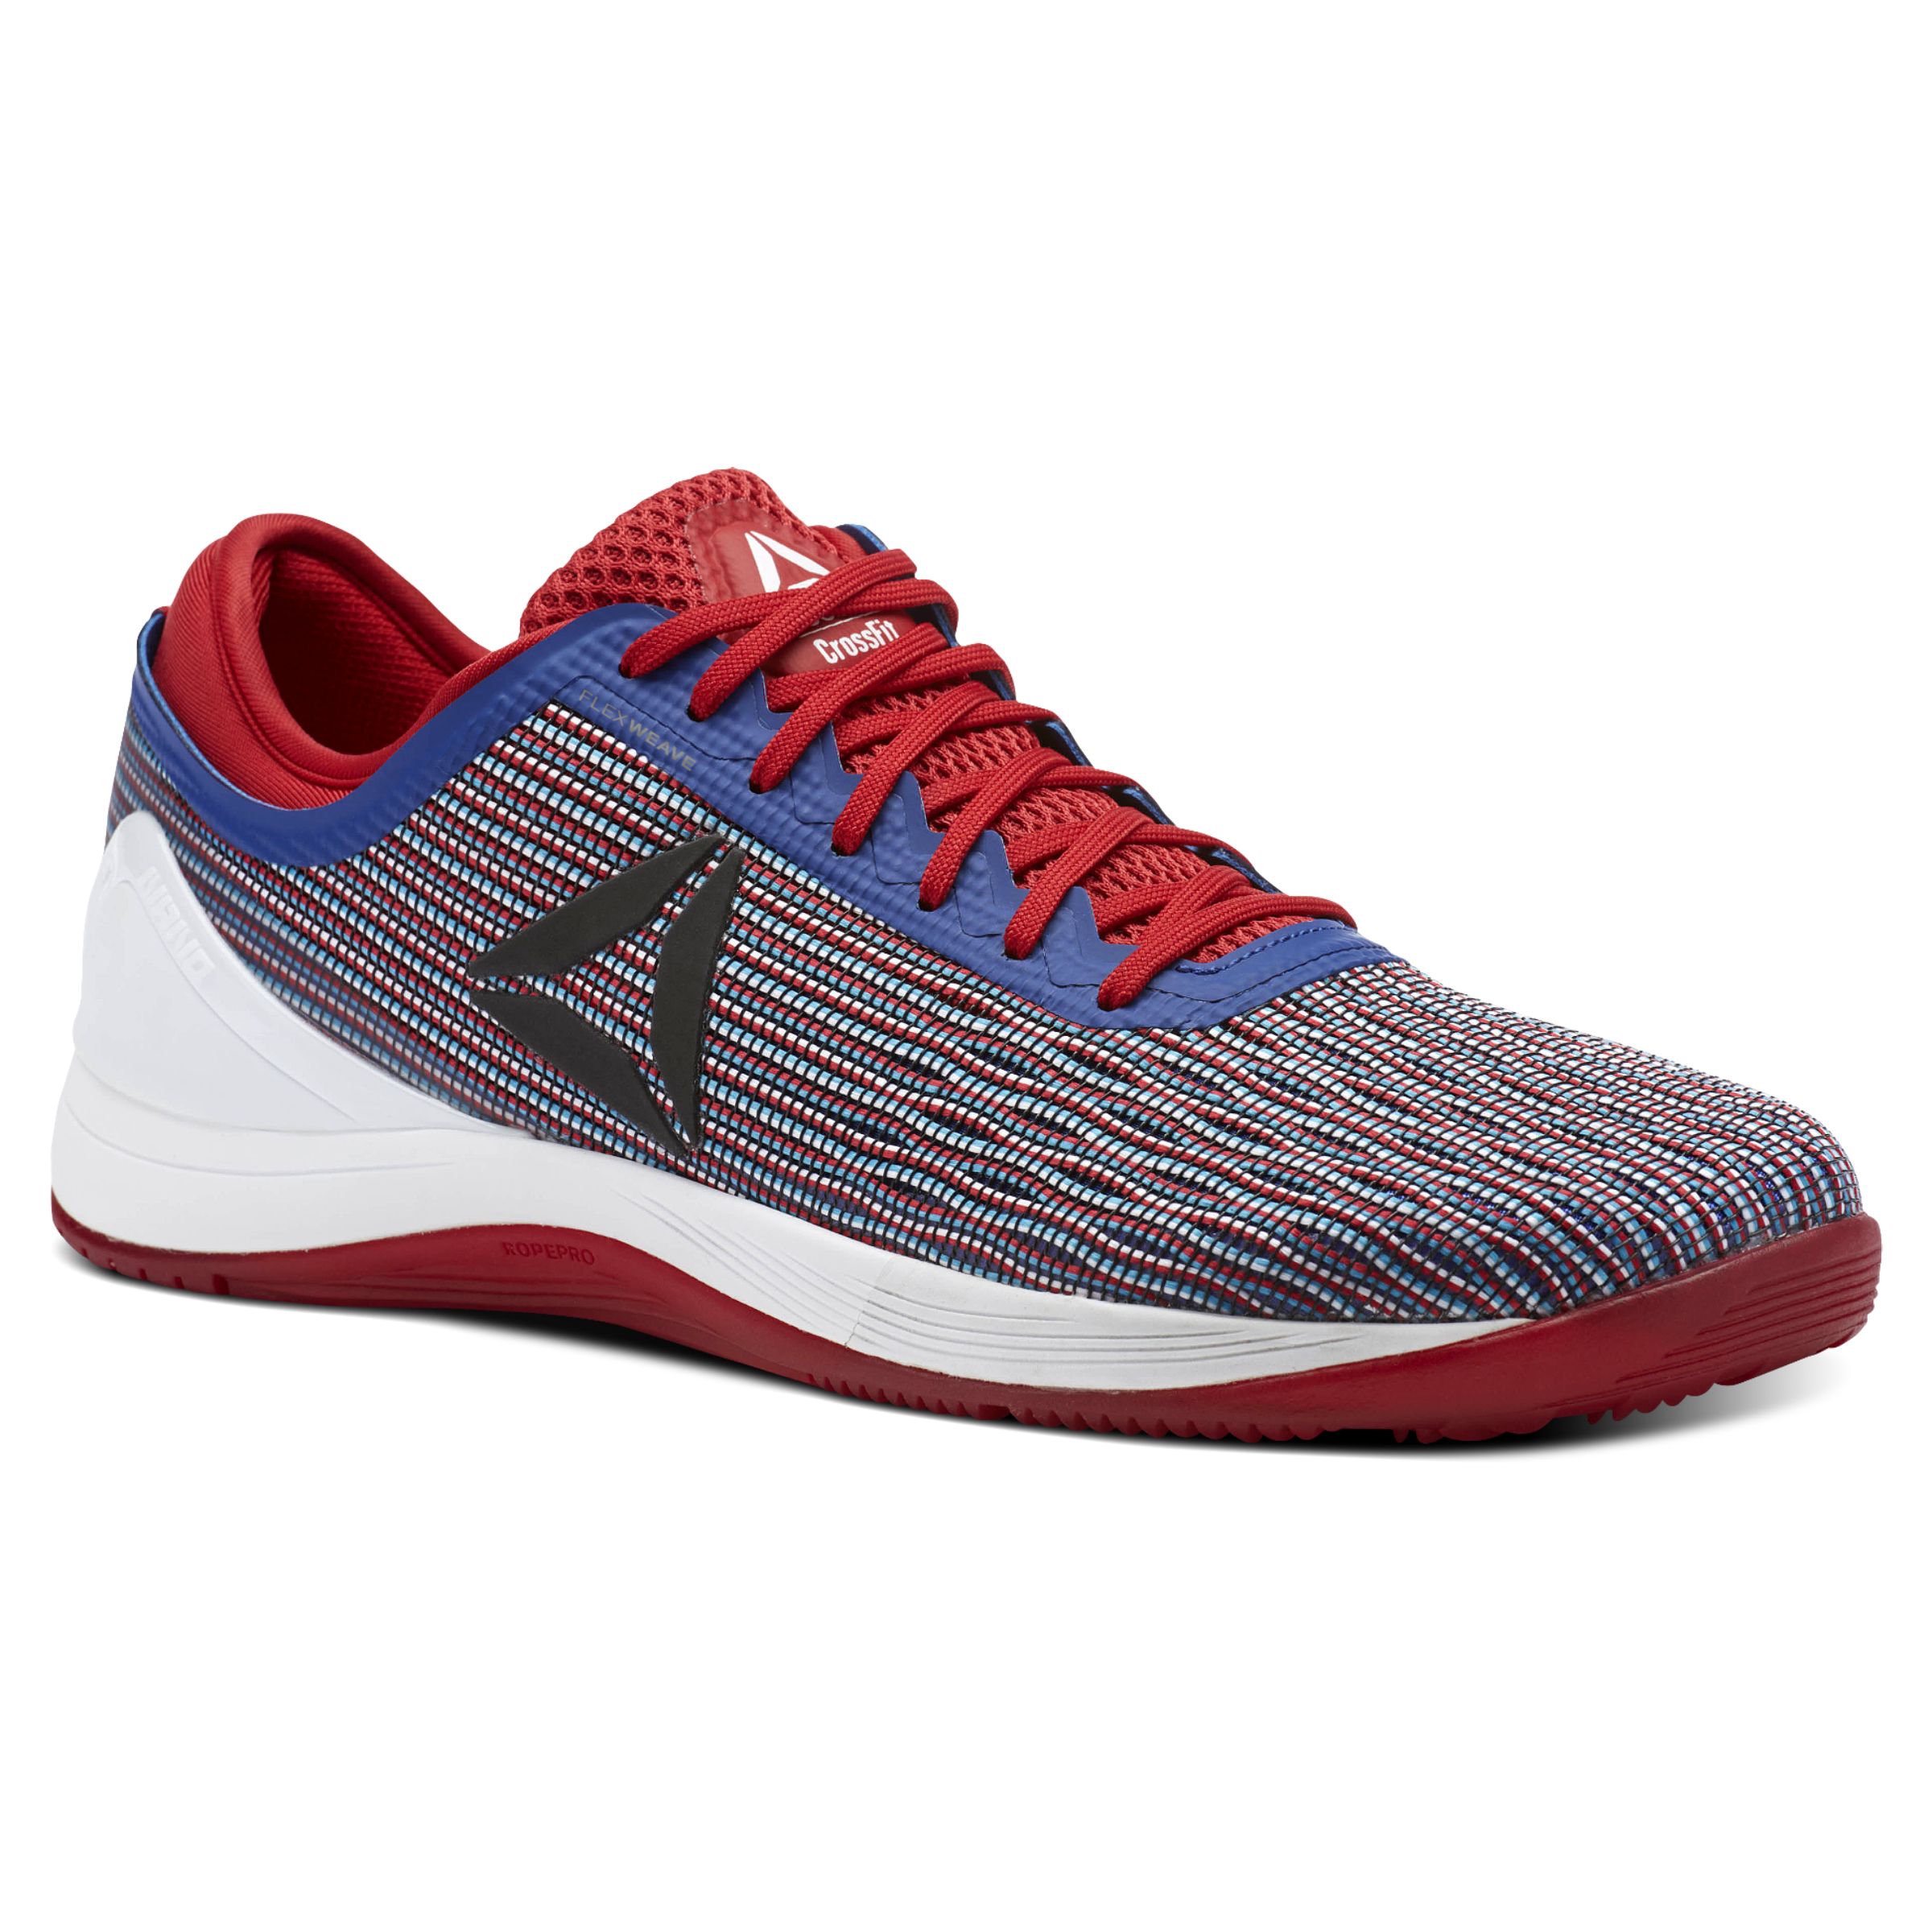 Reebok-CrossFit-Nano-8-Flexweave-Men-039-s-Shoes miniatura 10